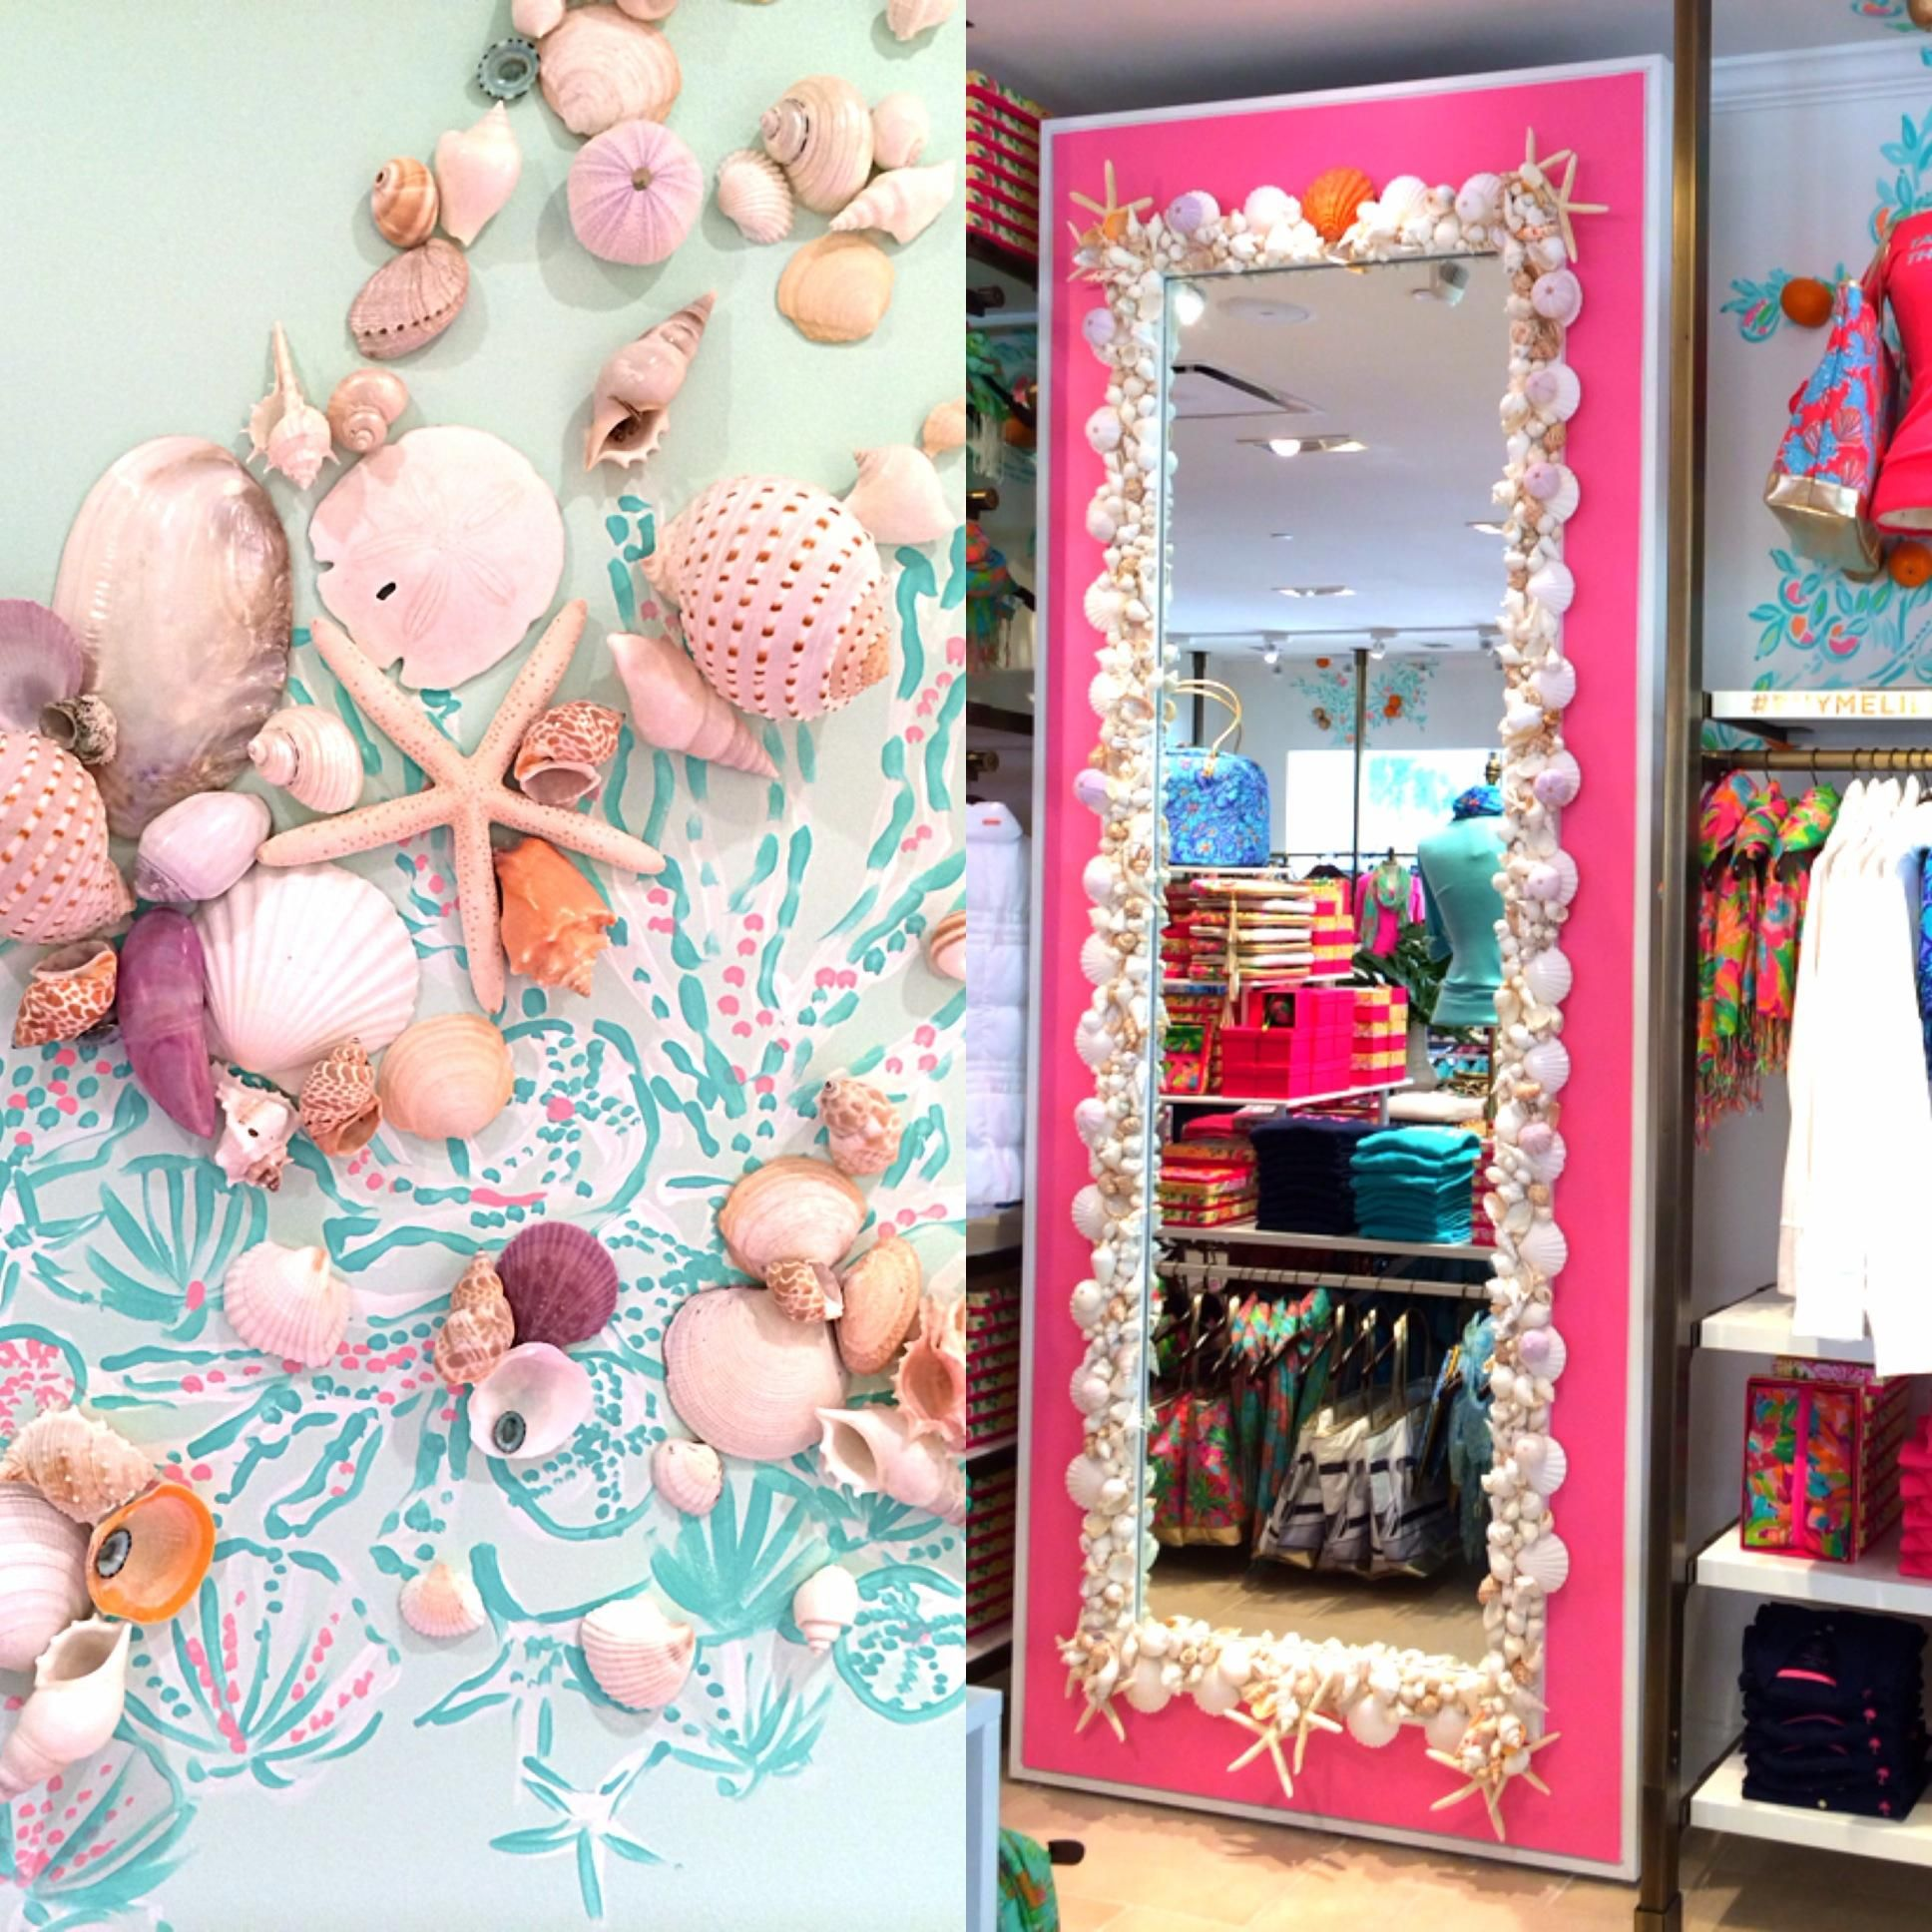 DIY Mirror   Inspiration: Shell Decor In Lilly Pulitzer Waterside In Naples